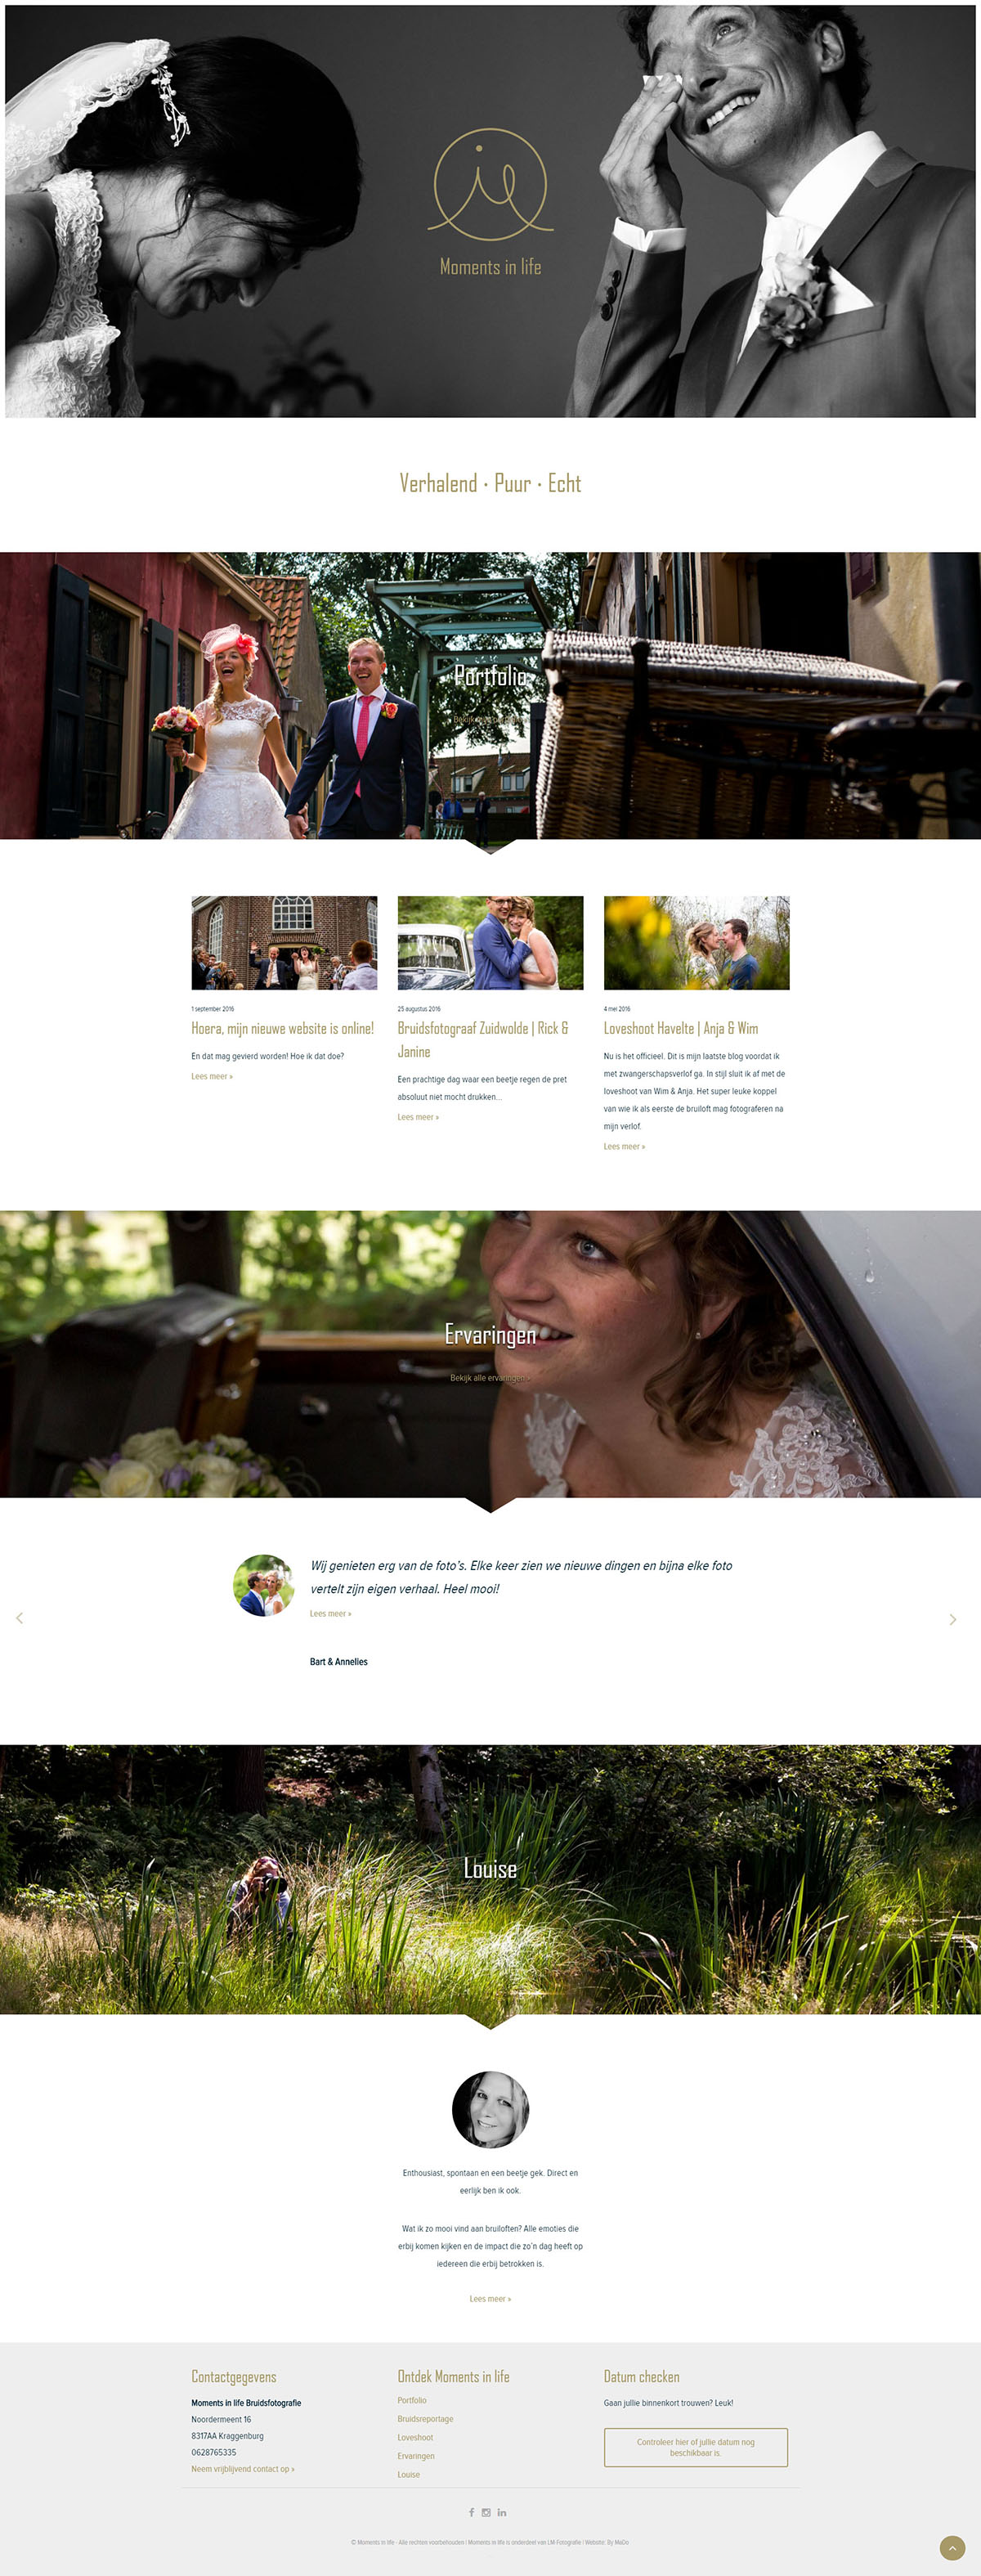 Website | Moments in life | Home